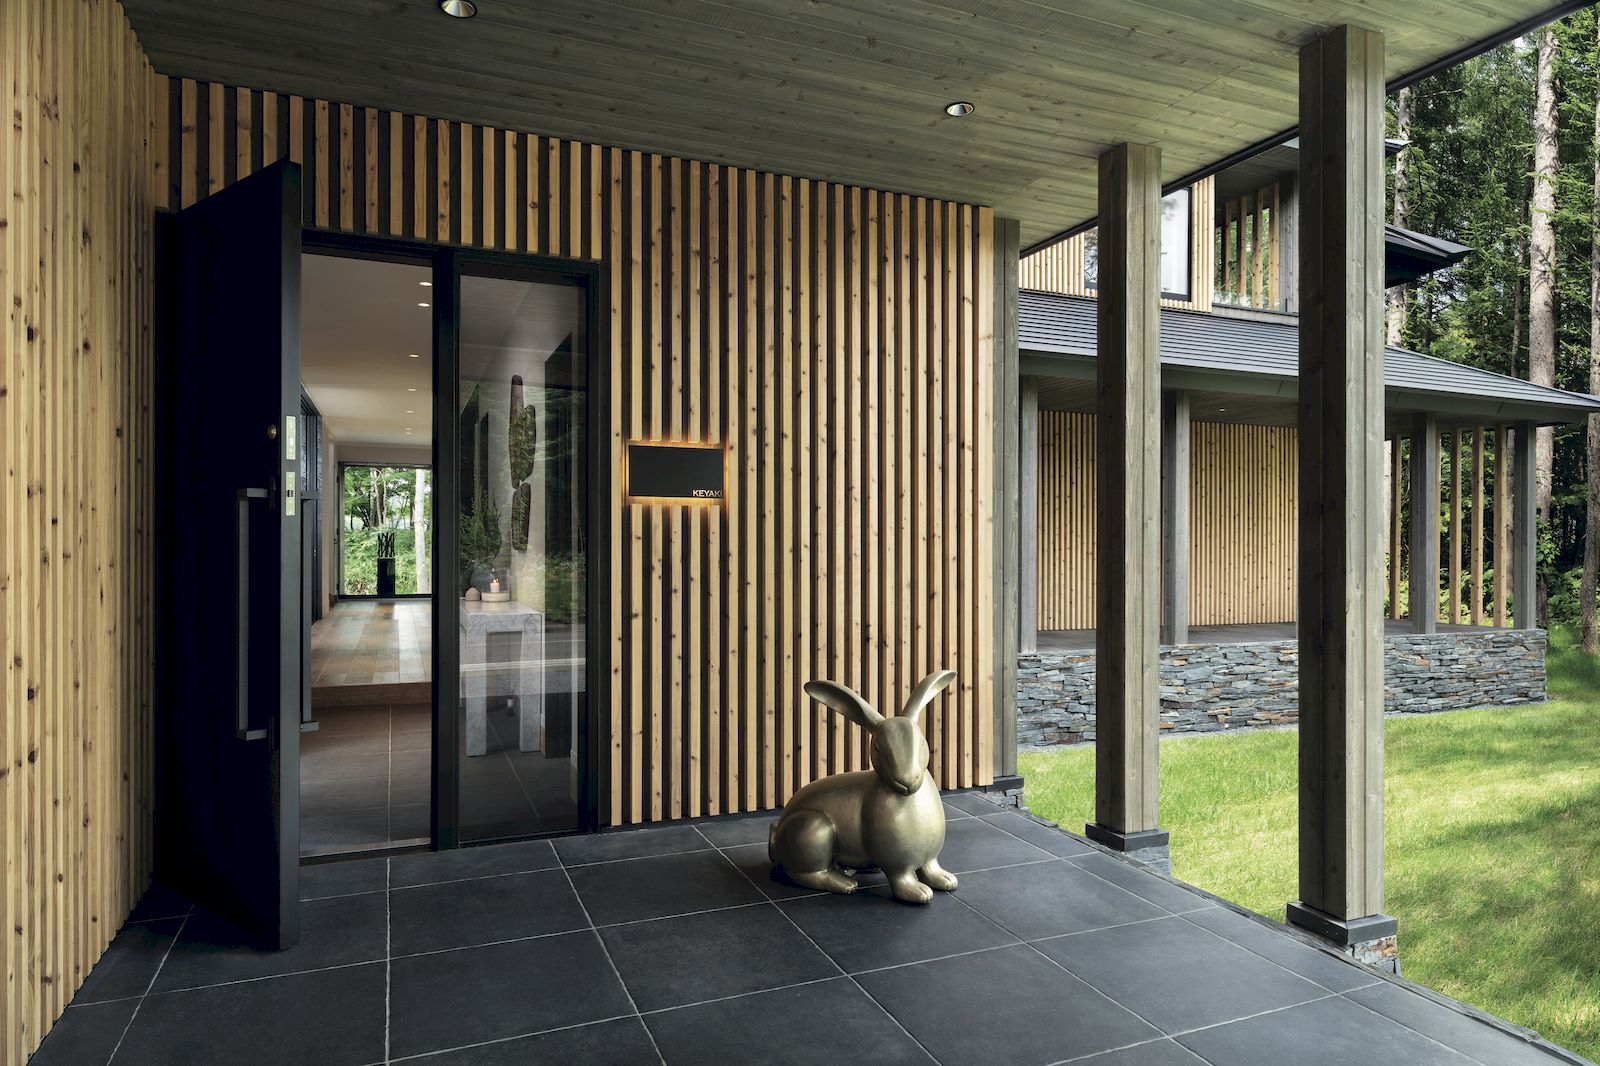 Jade Kua takes us on a tour of The Ginto Residences in Niseko, Japan